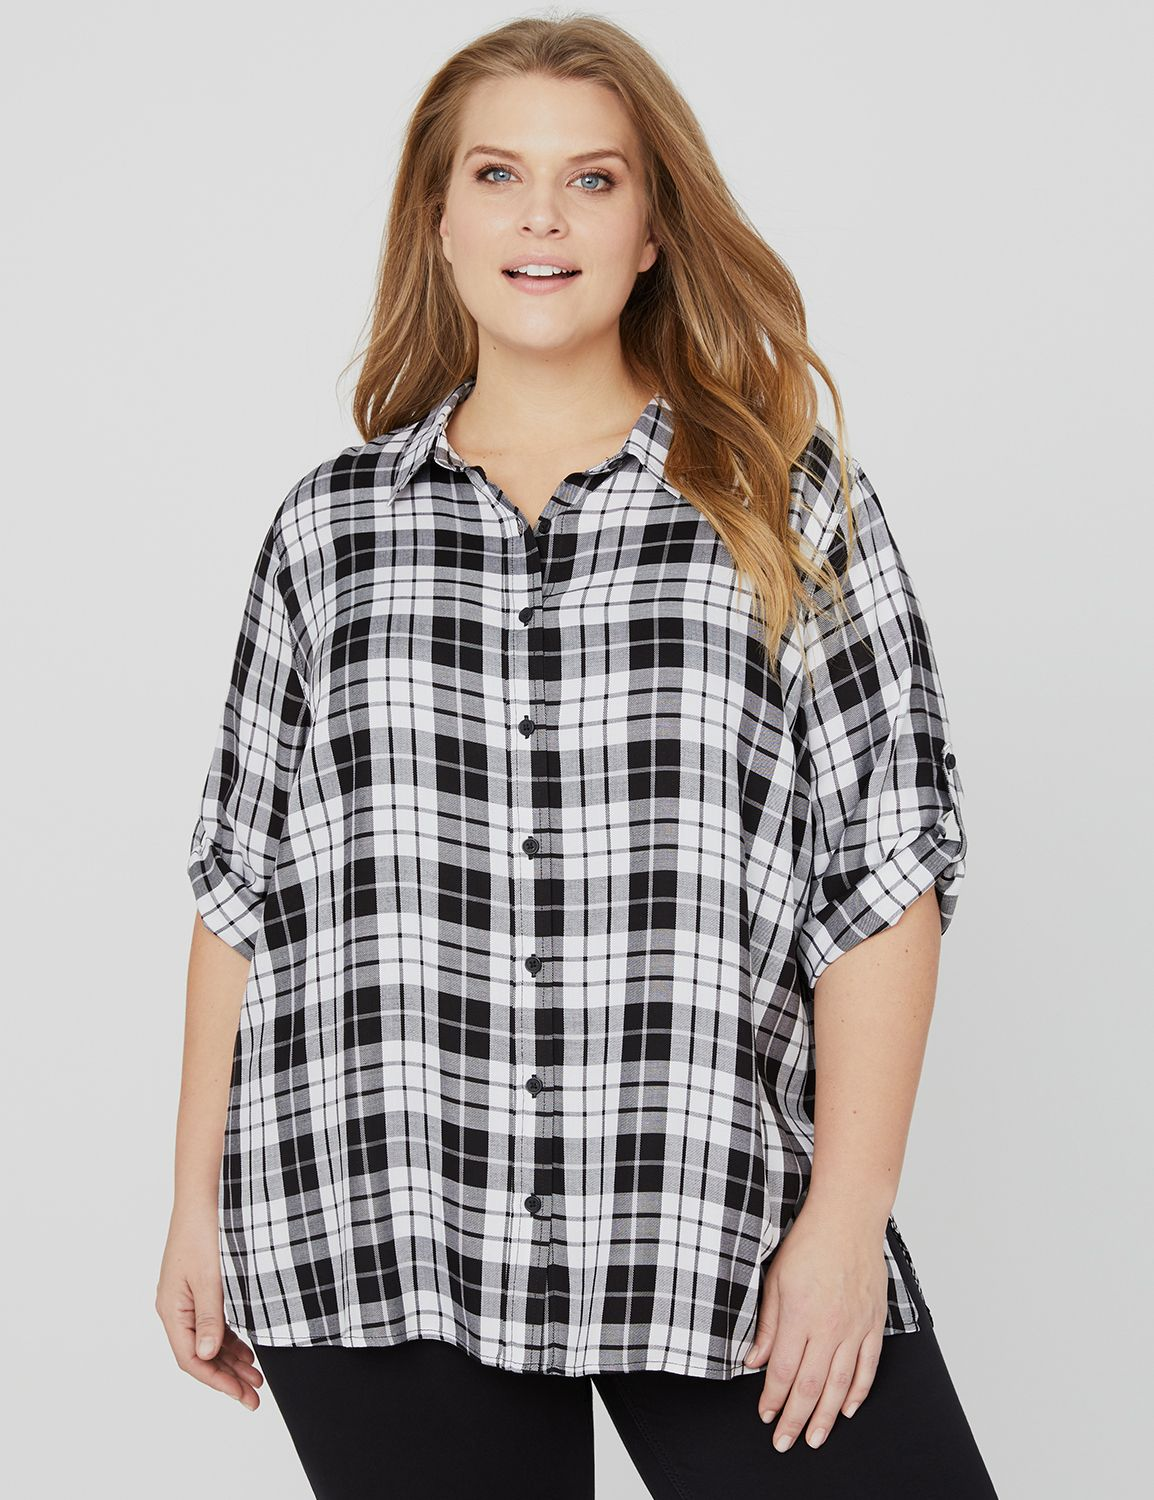 Hybrid Buttonfront Shirt 1093256 3/4 SLV PLAID BACK SHIRT MP-300101745